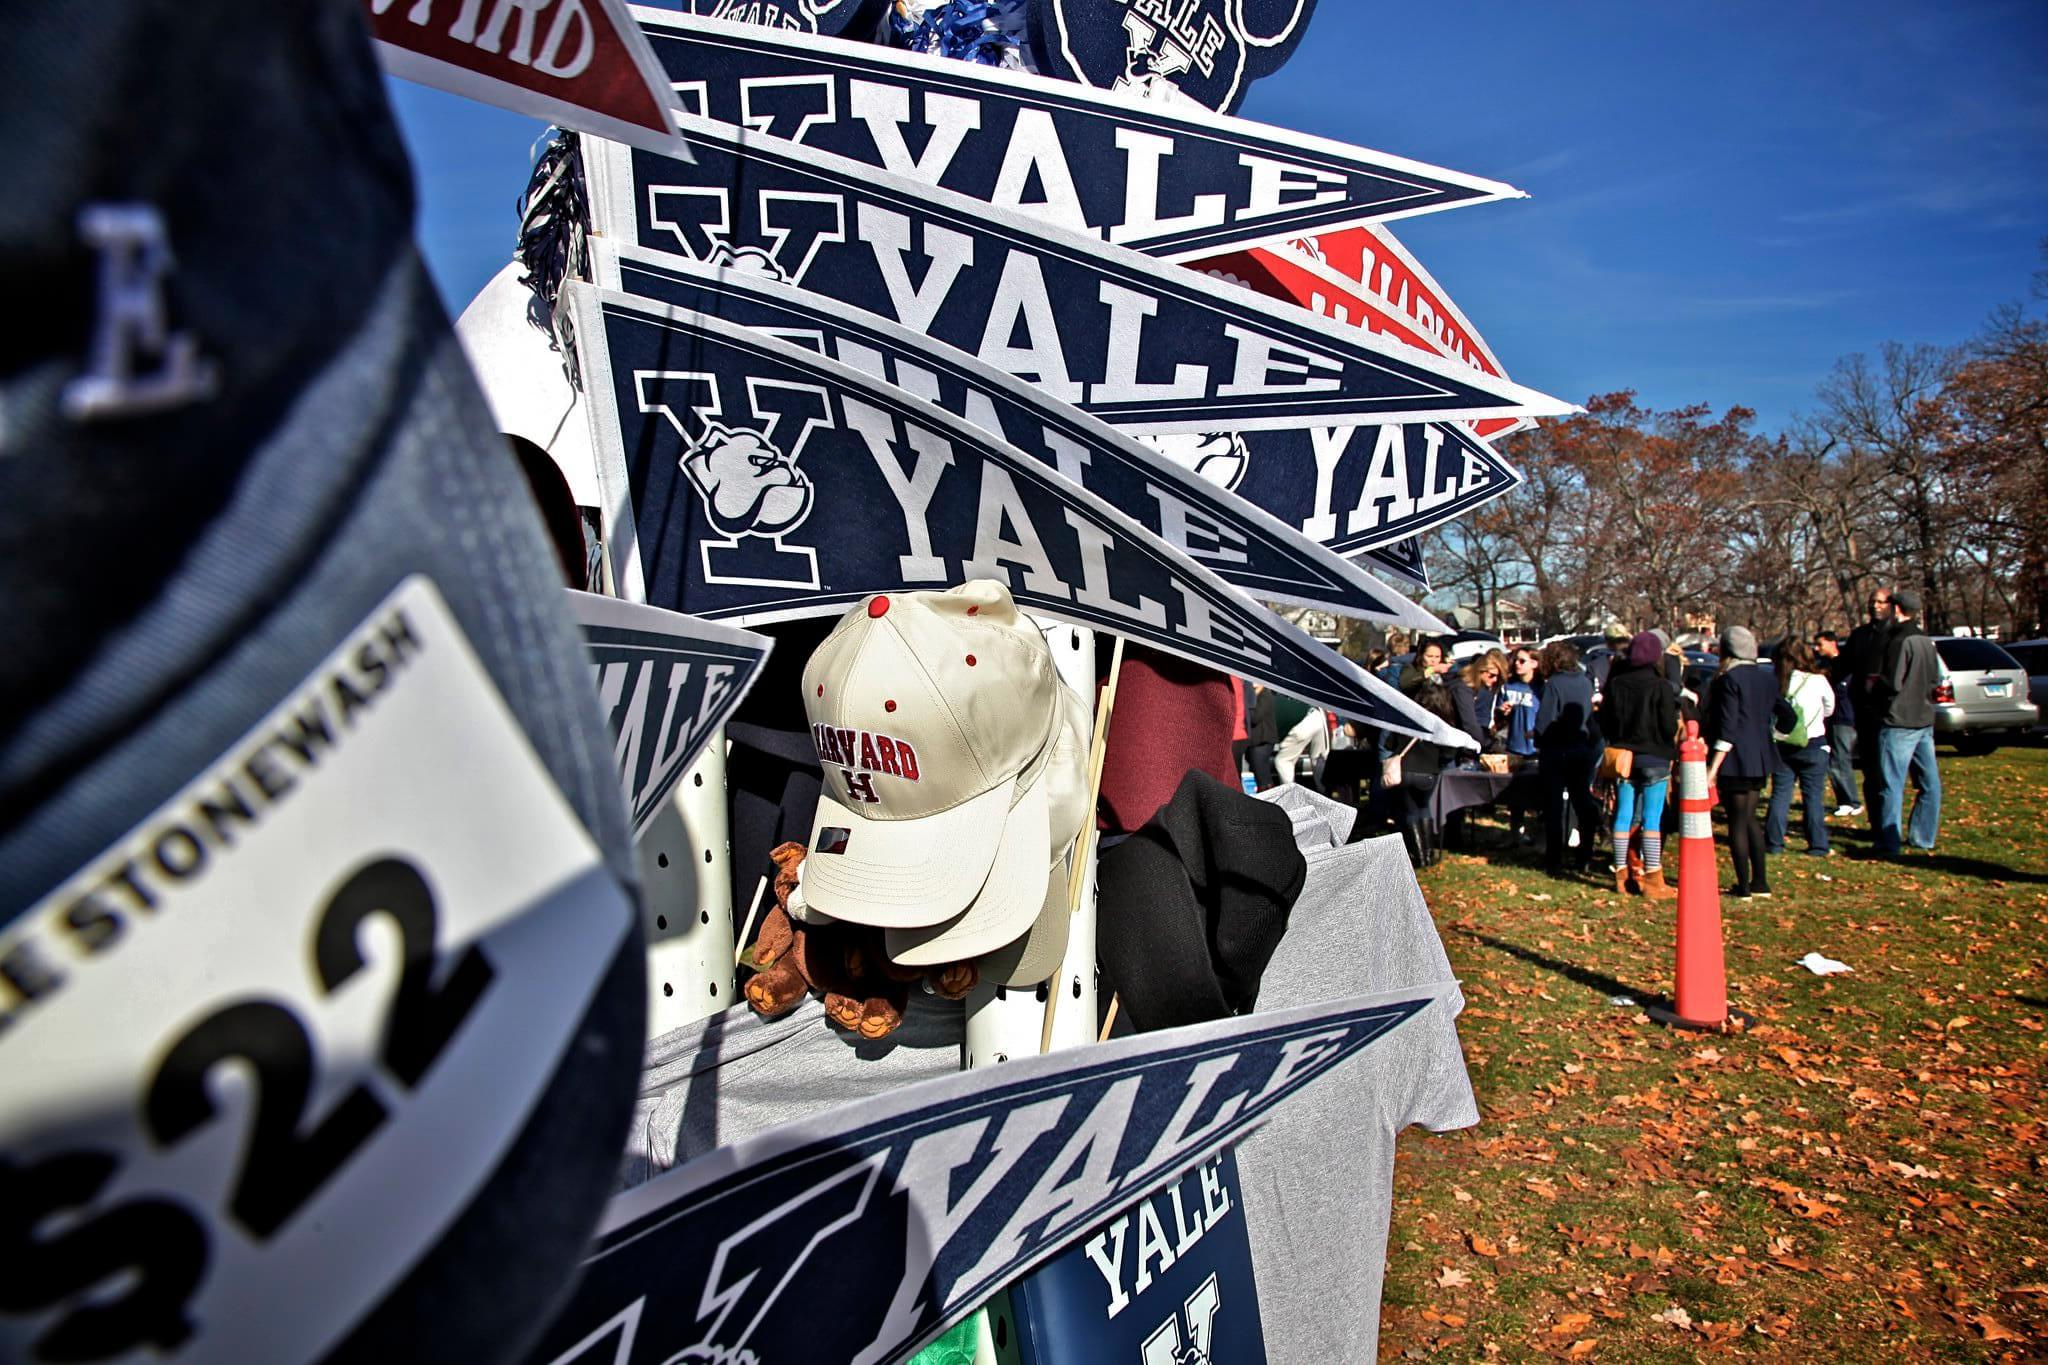 Harvard vs Yale Different Sports rivalry